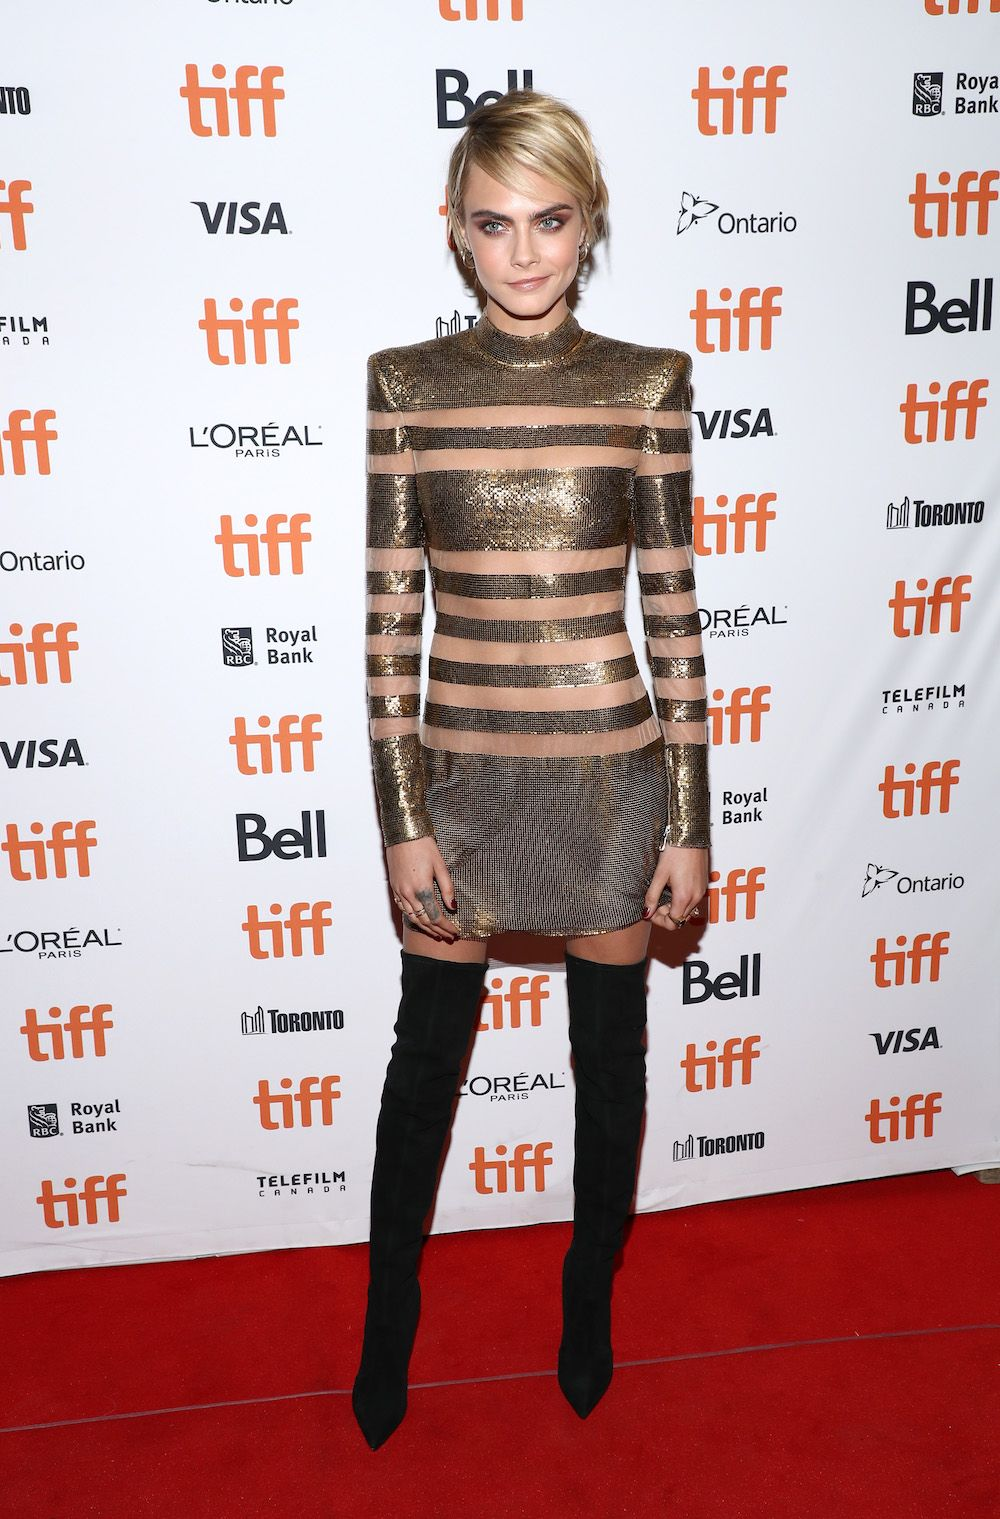 The BestDressed Celebrities on the 2018 TIFF Red Carpet